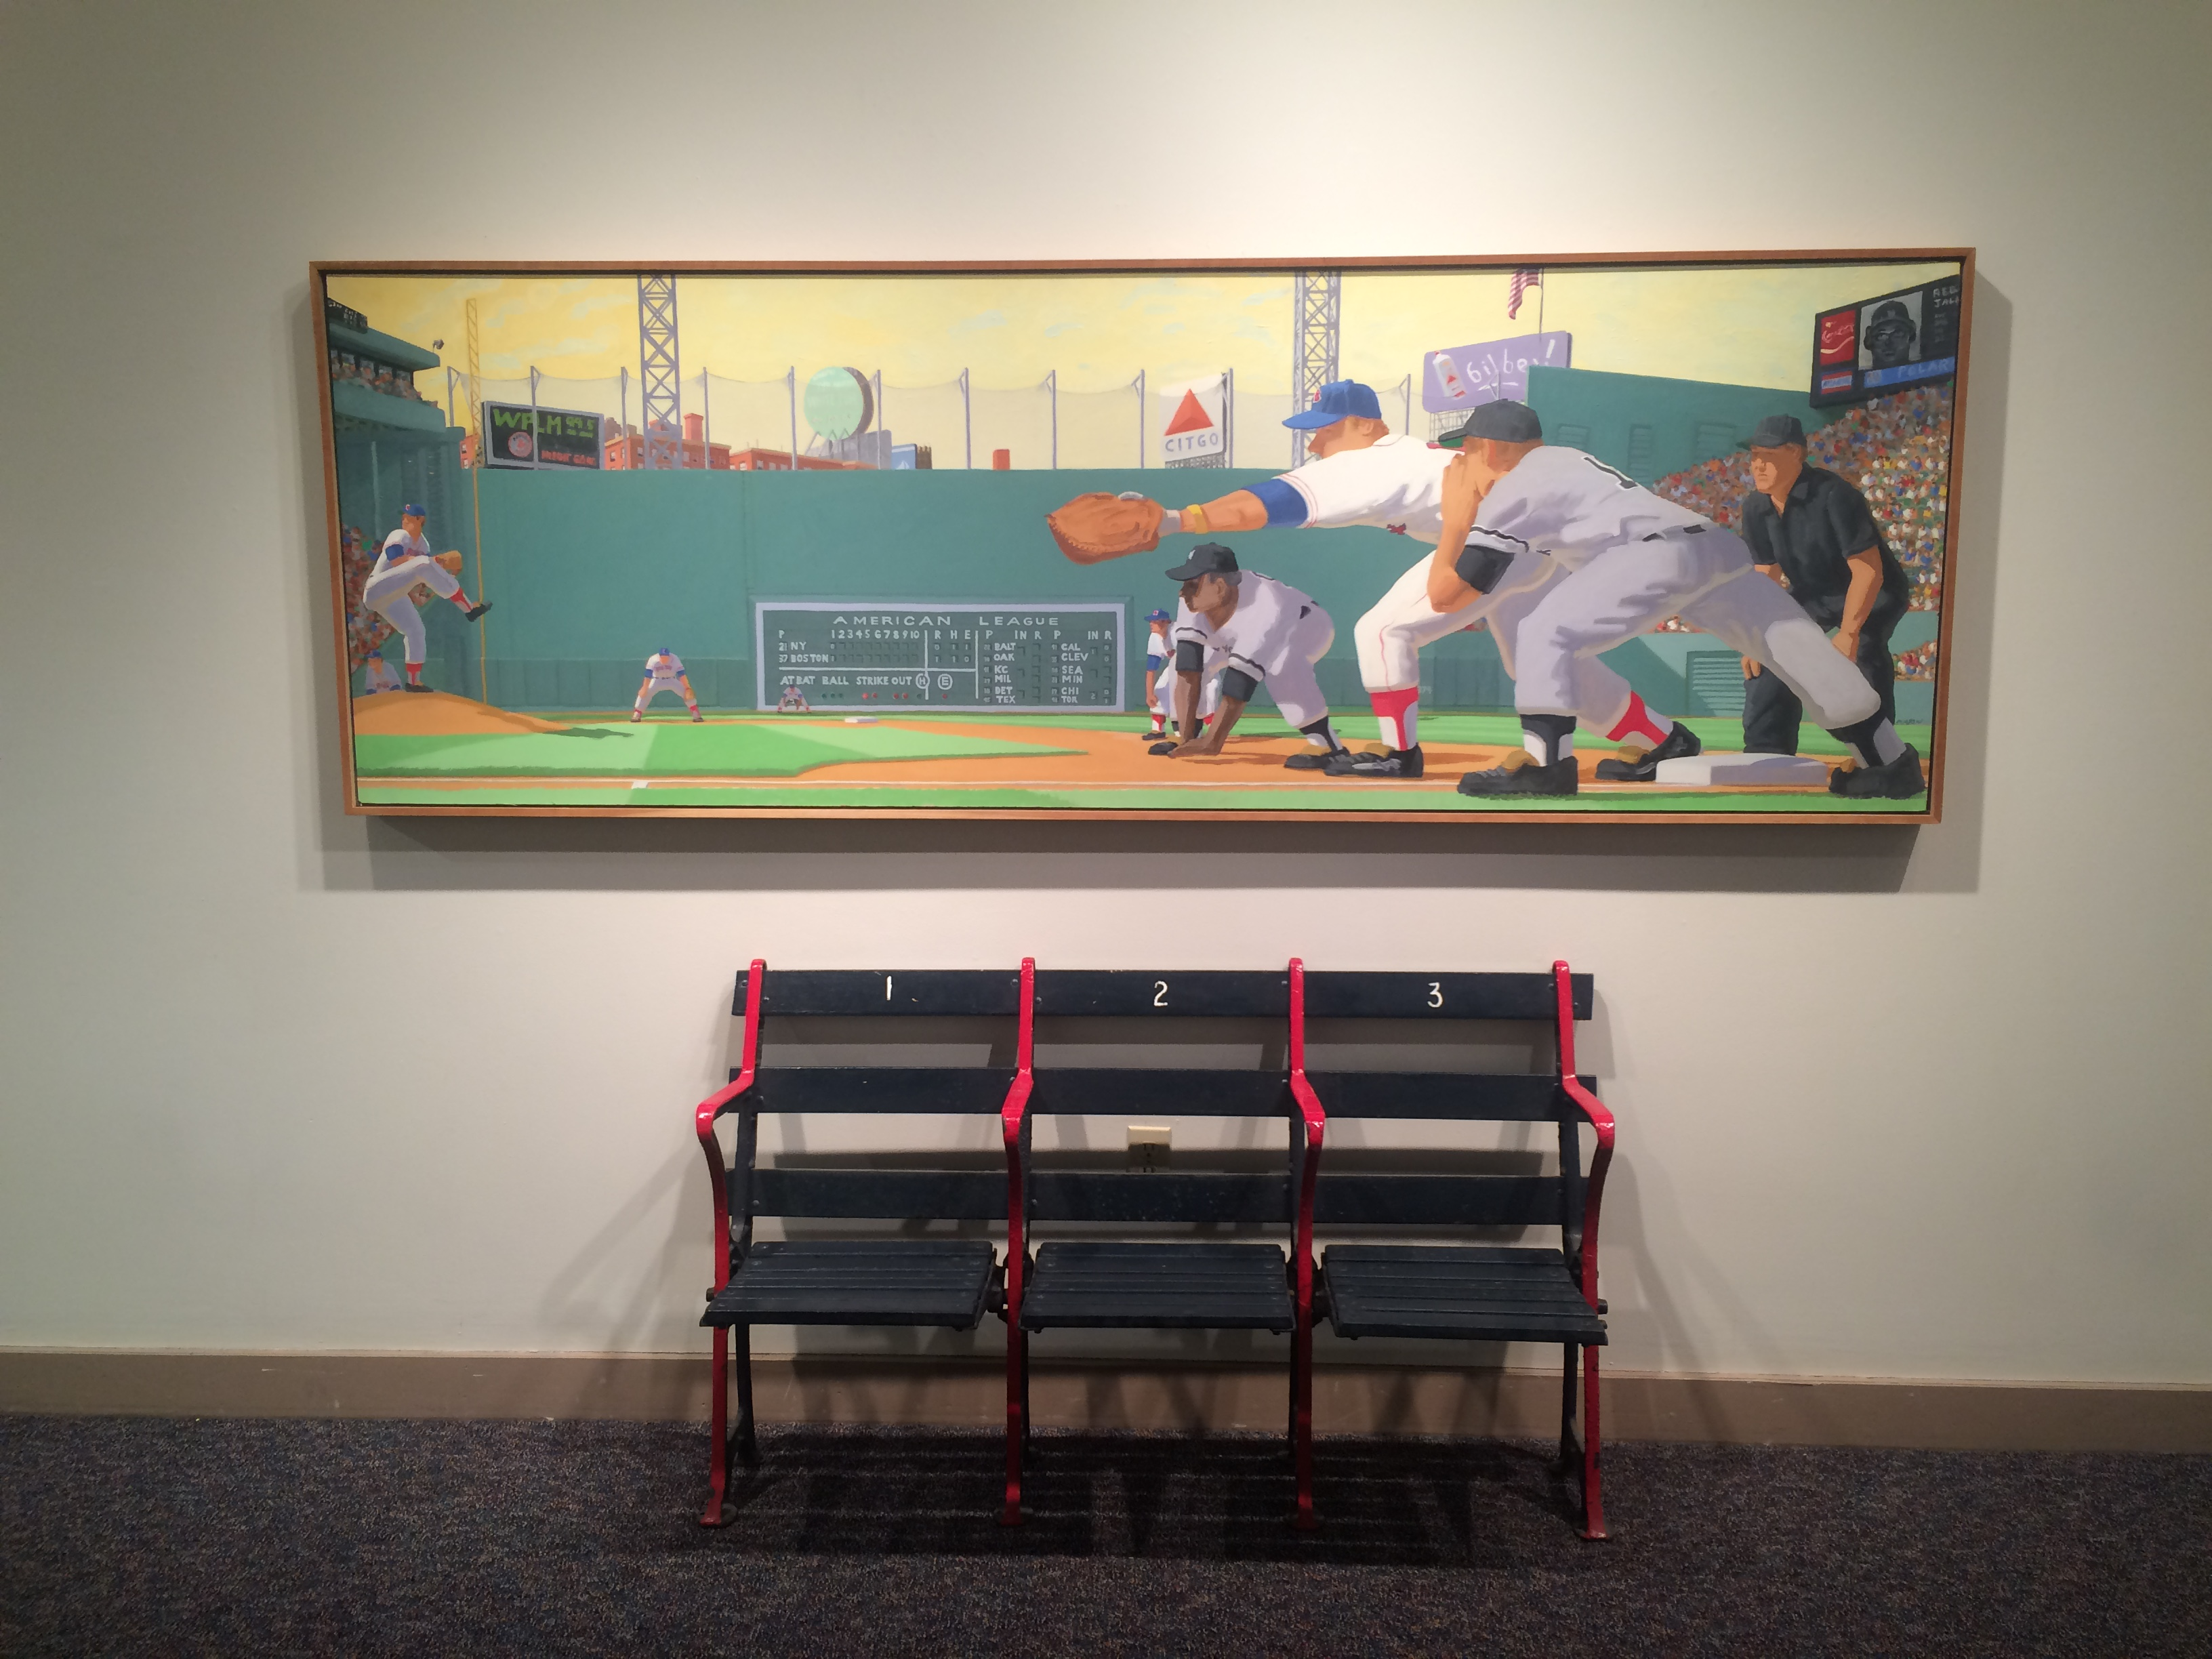 Mason's Fenway Park features a classic rivalry between the Yankees and Red Sox. This exact painting is now on permanent display in the Melvoin Academic Center.